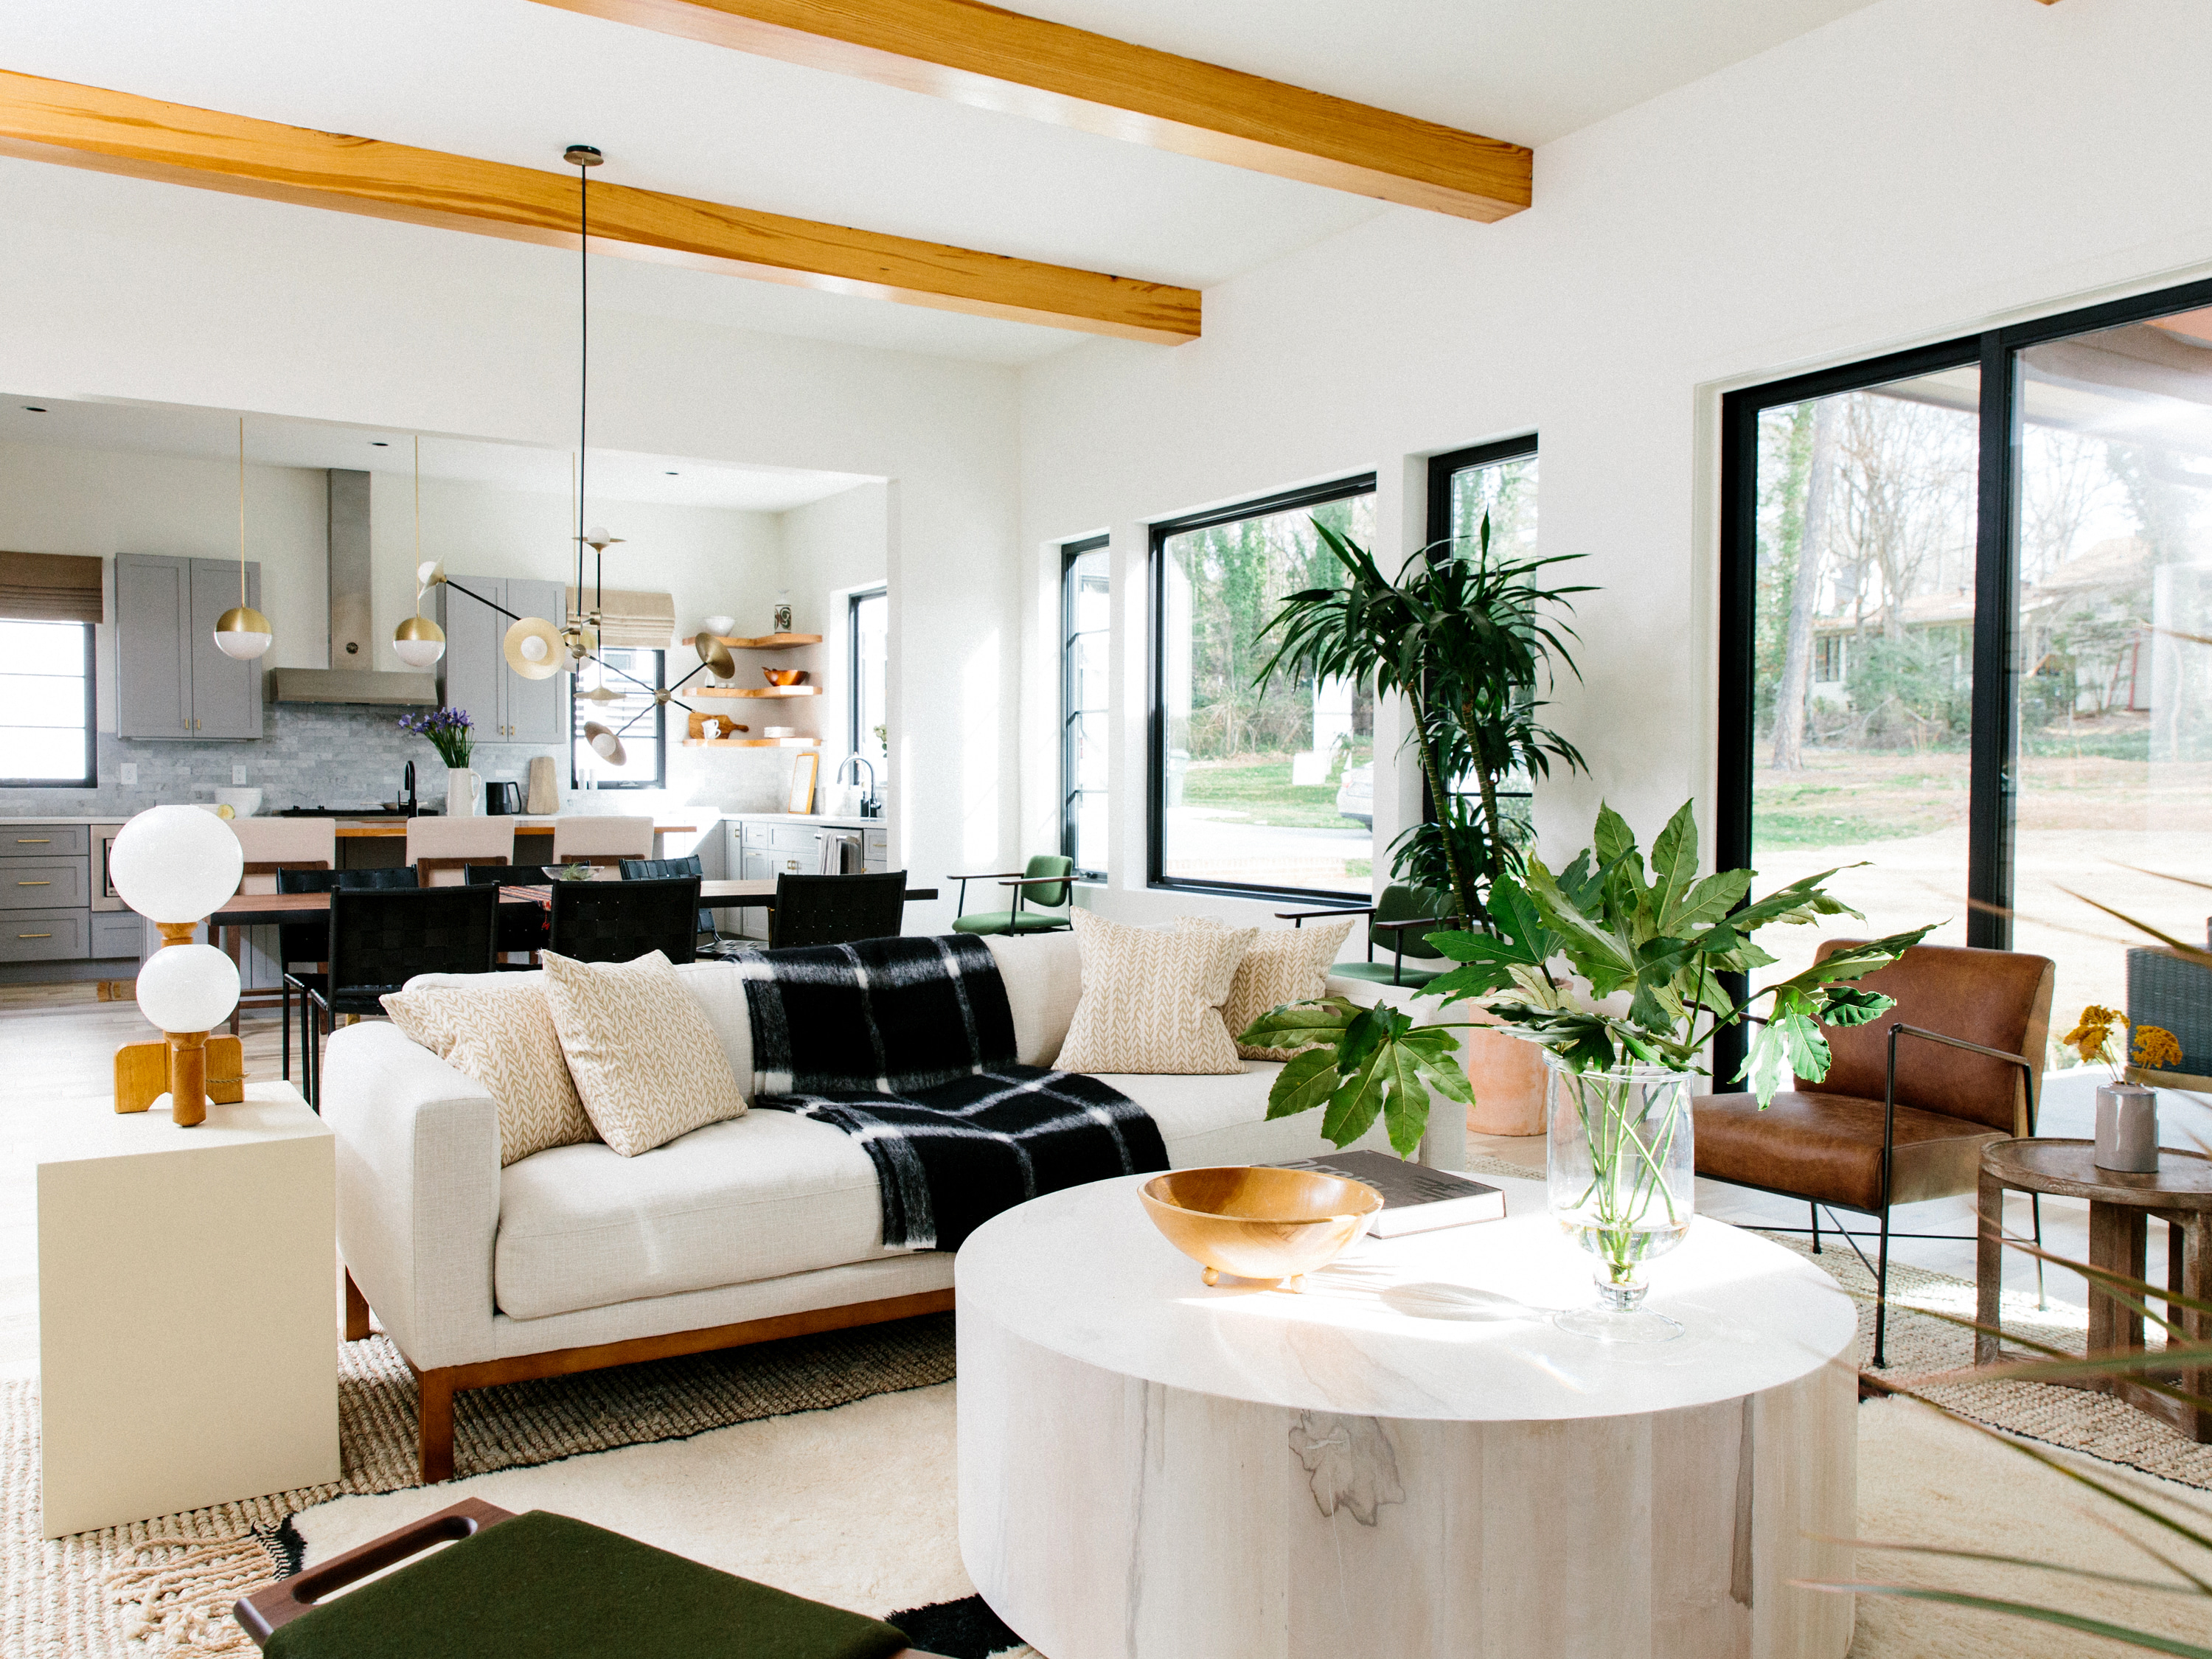 Allyson Payer's Bright, Modern Home